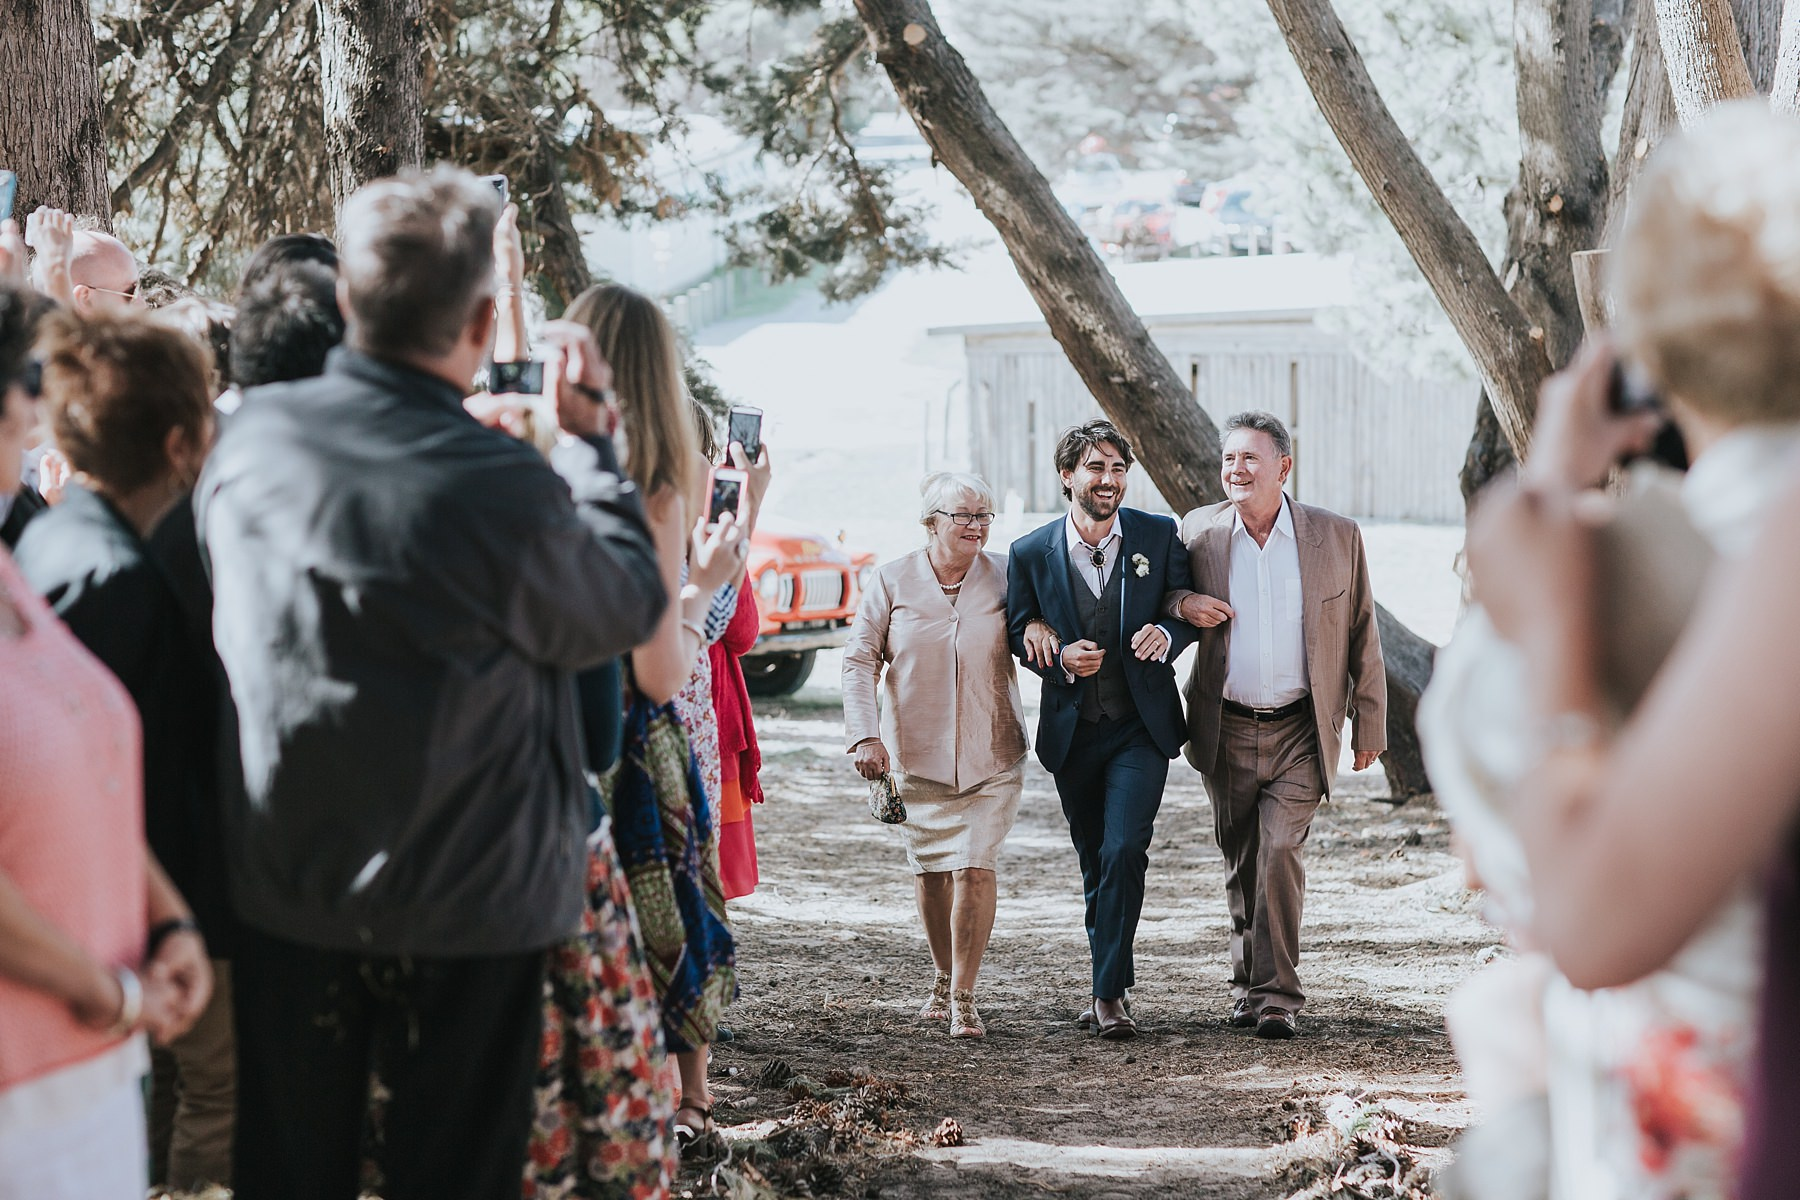 grooms parents walking him down the aisle